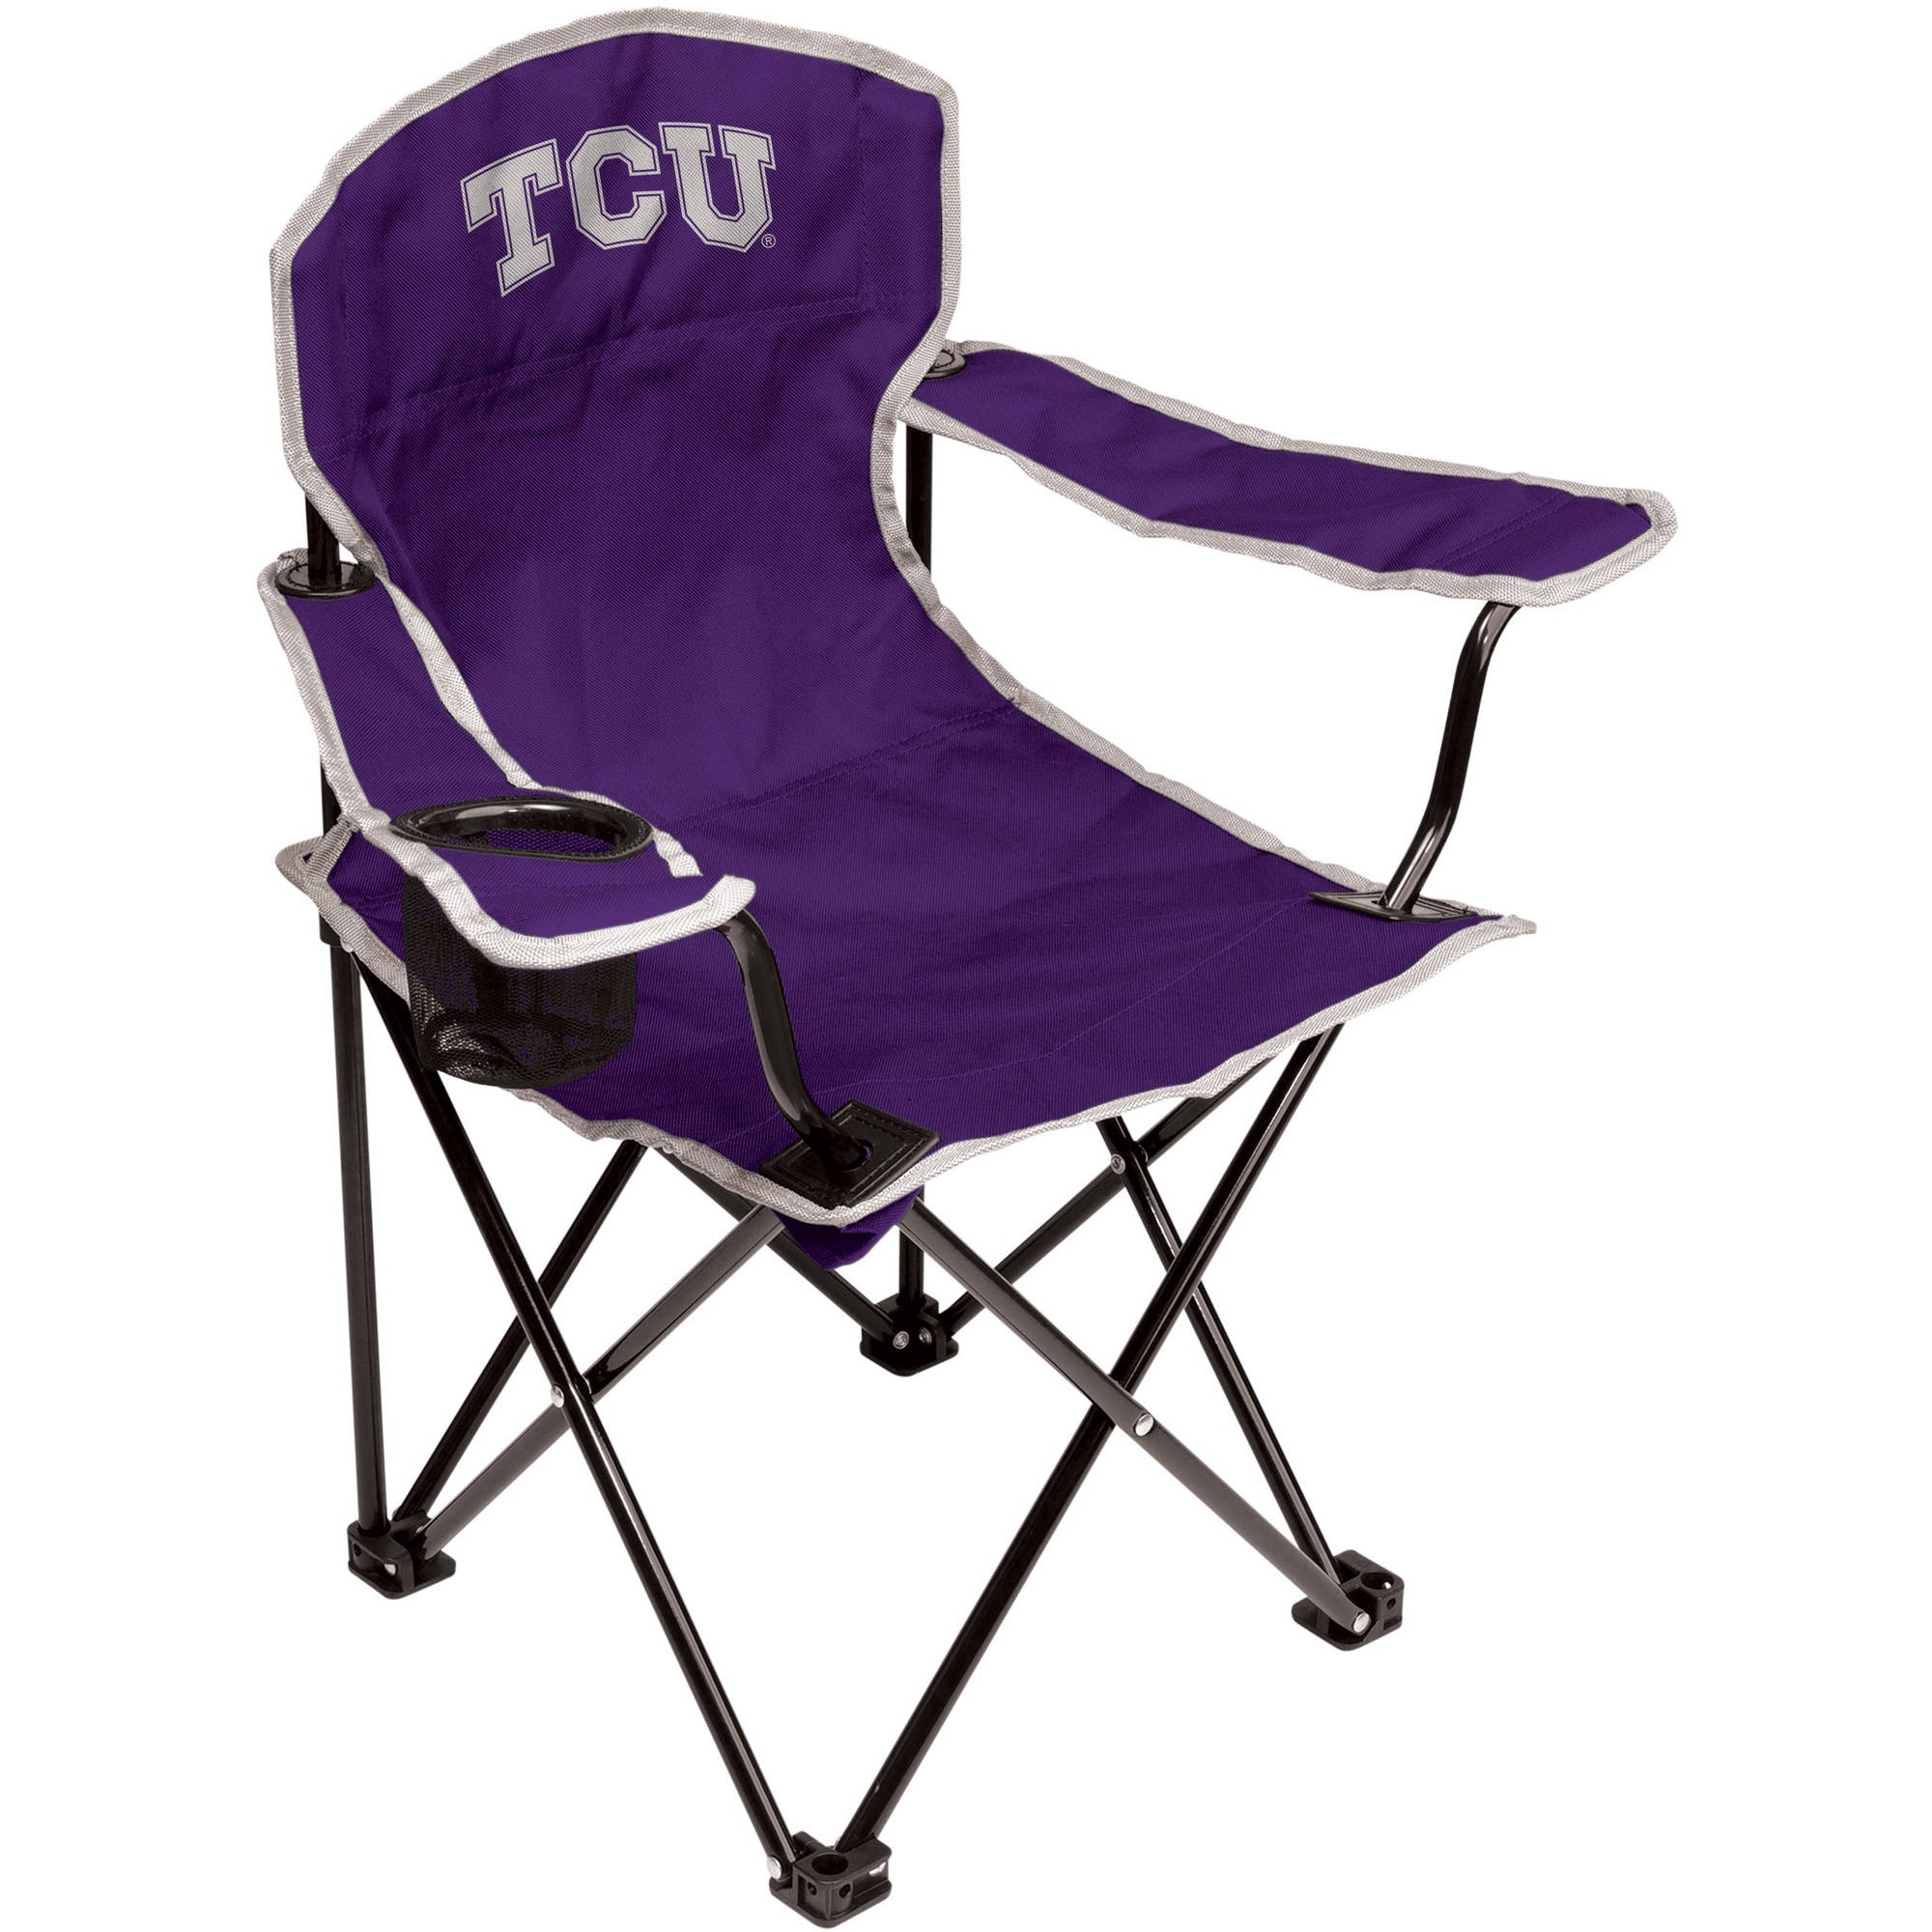 NCAA Texas Christian Horned Frogs Youth Size Tailgate Chair from Coleman by Rawlings